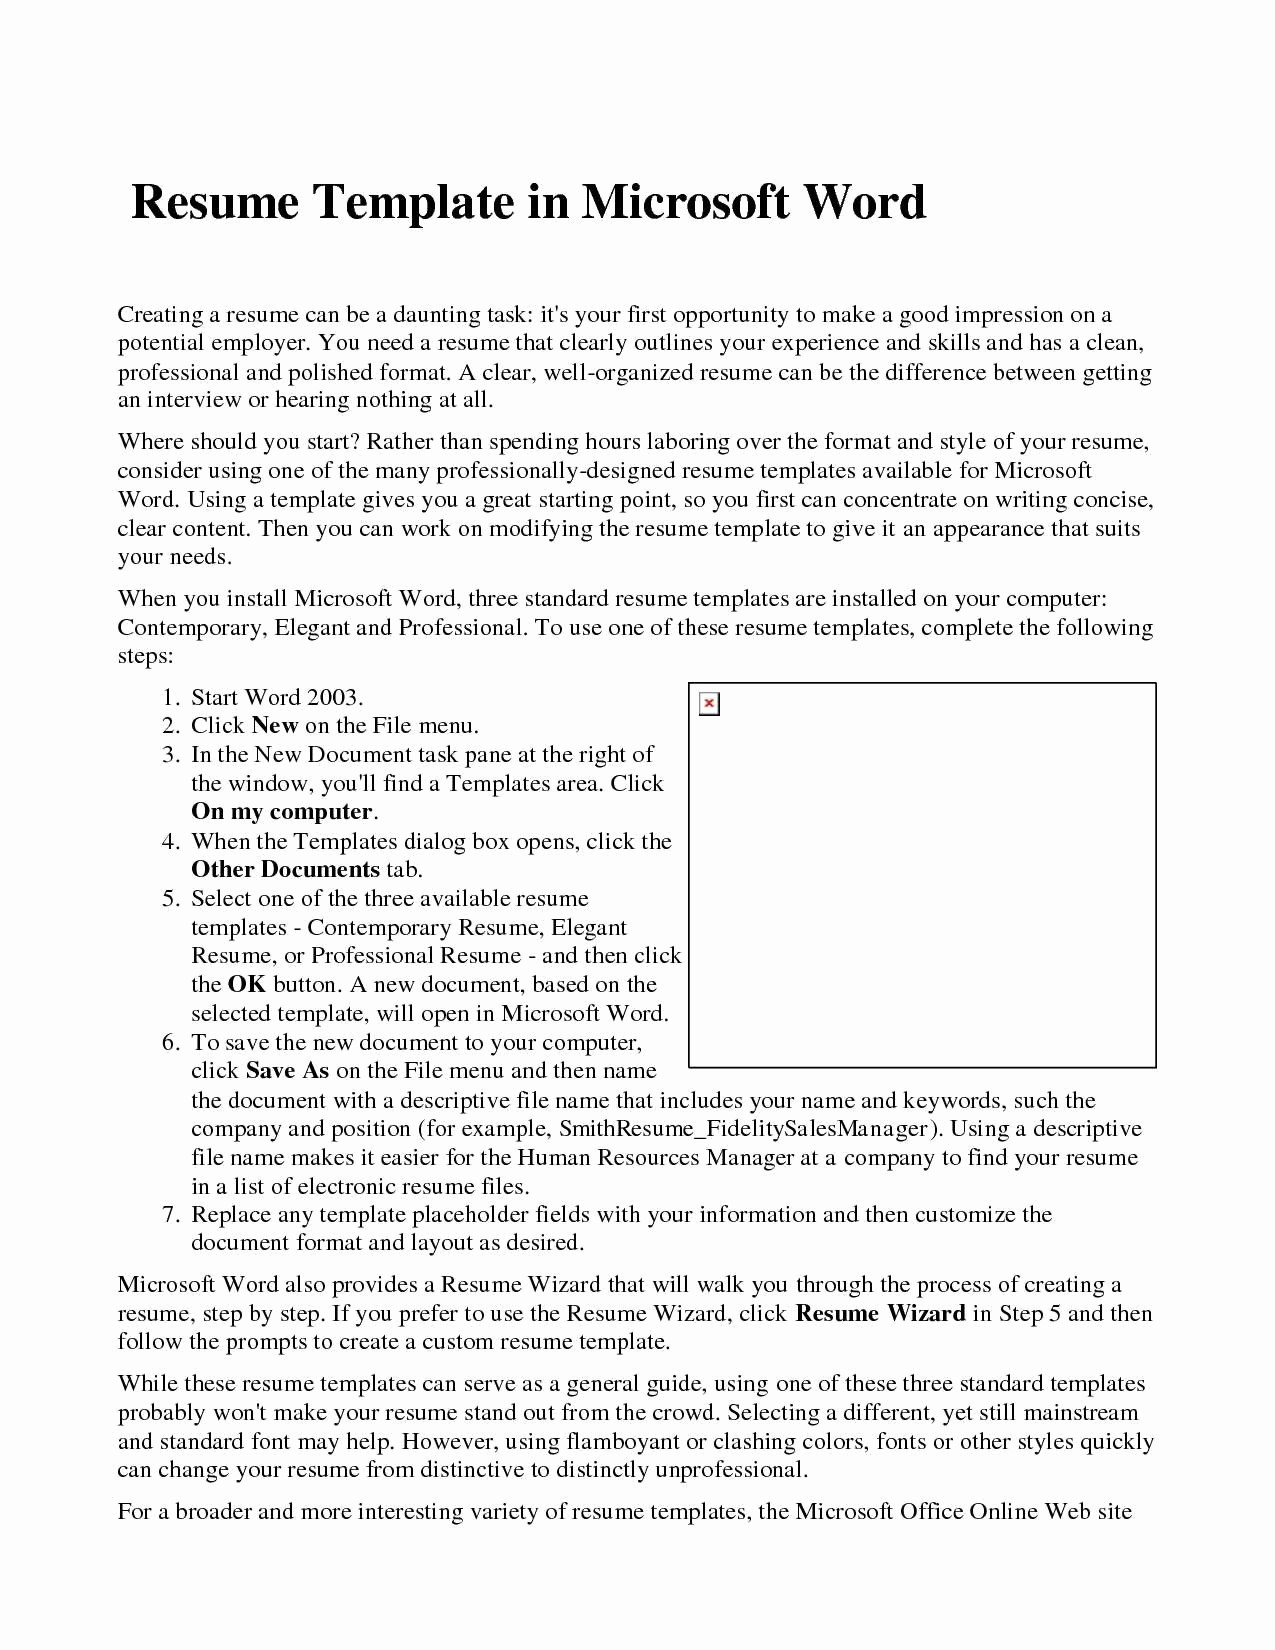 Resume Template Microsoft Word 2007 Unique Great Microsoft Word 2007 Resume Template